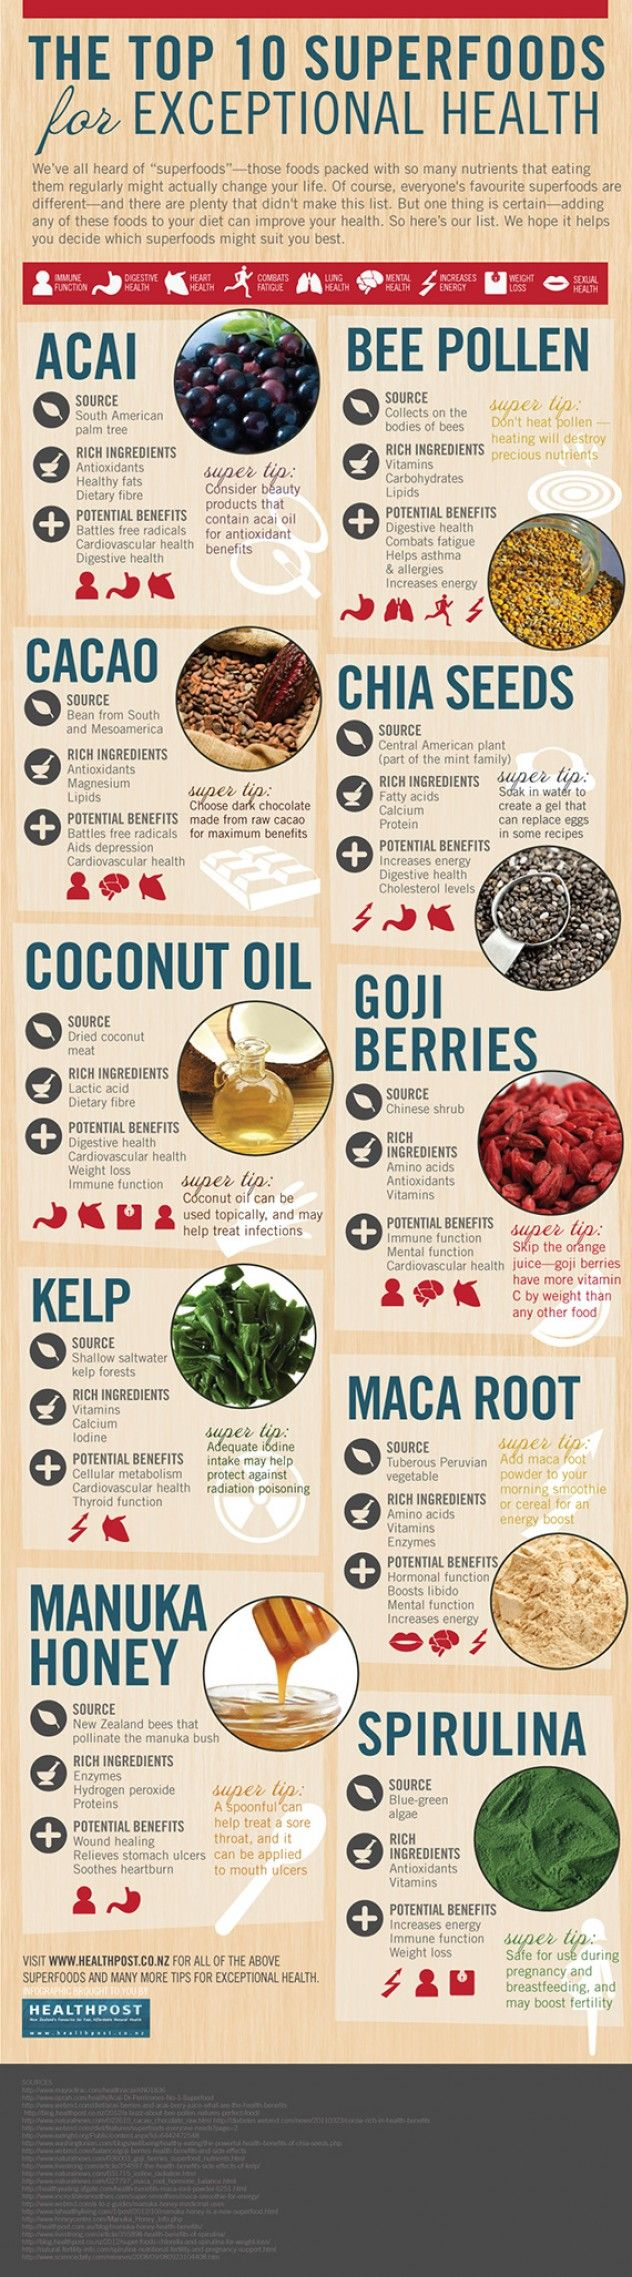 "This list of superfoods is just another numbers because we knew there are loads out there to count more. We've all heard or read the expression ""superfoods"""